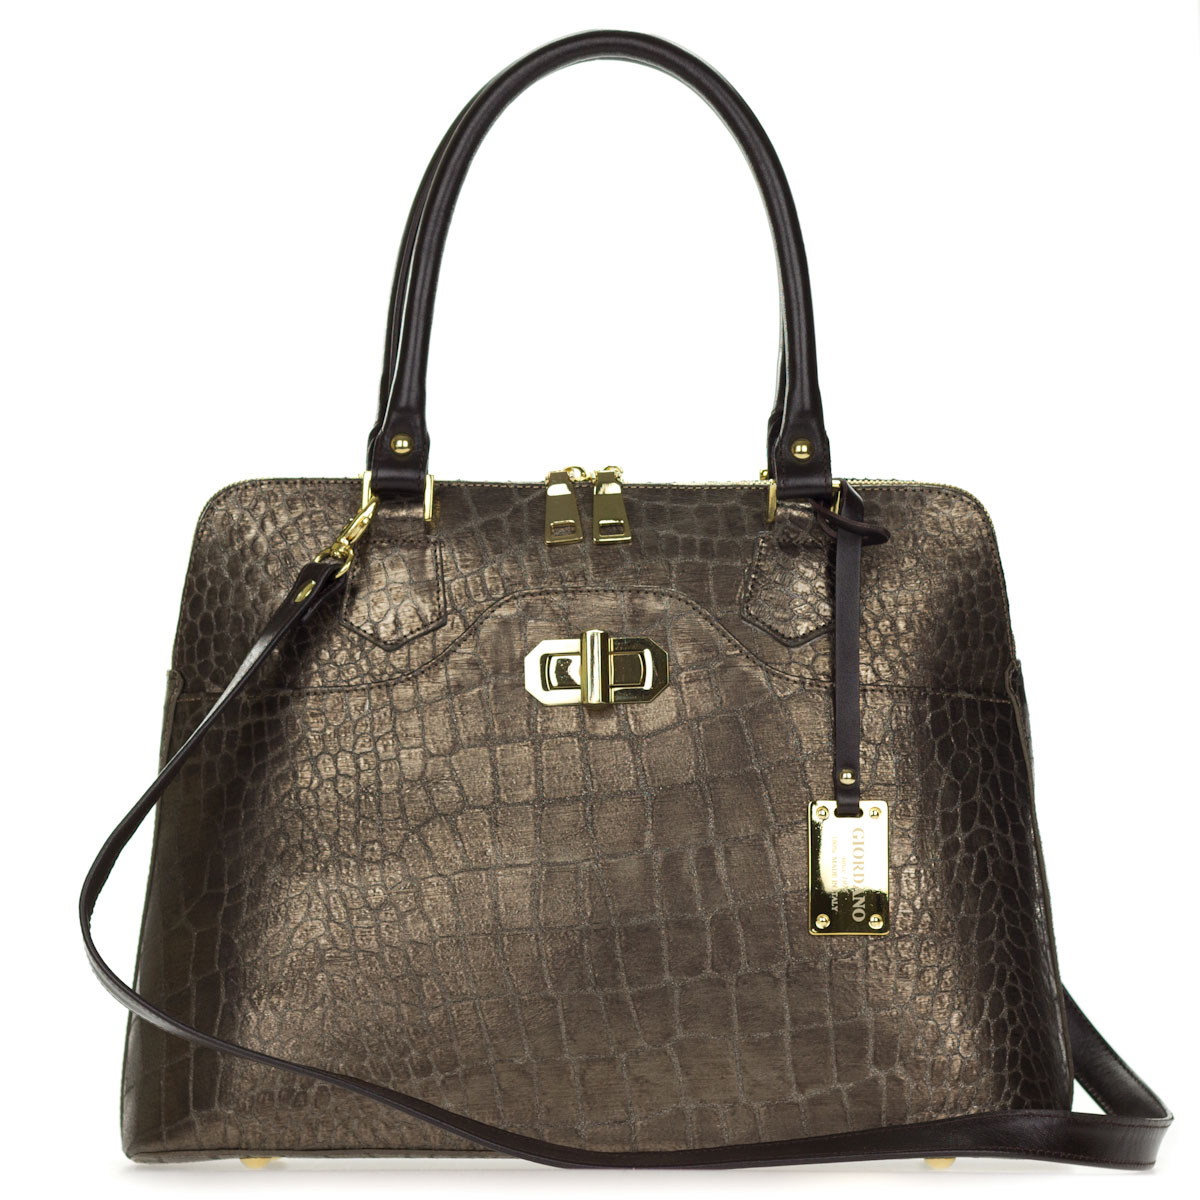 Metallic Brown Pewter Crocodile Embossed Leather Tote Handbag Made in Italy by Giordano